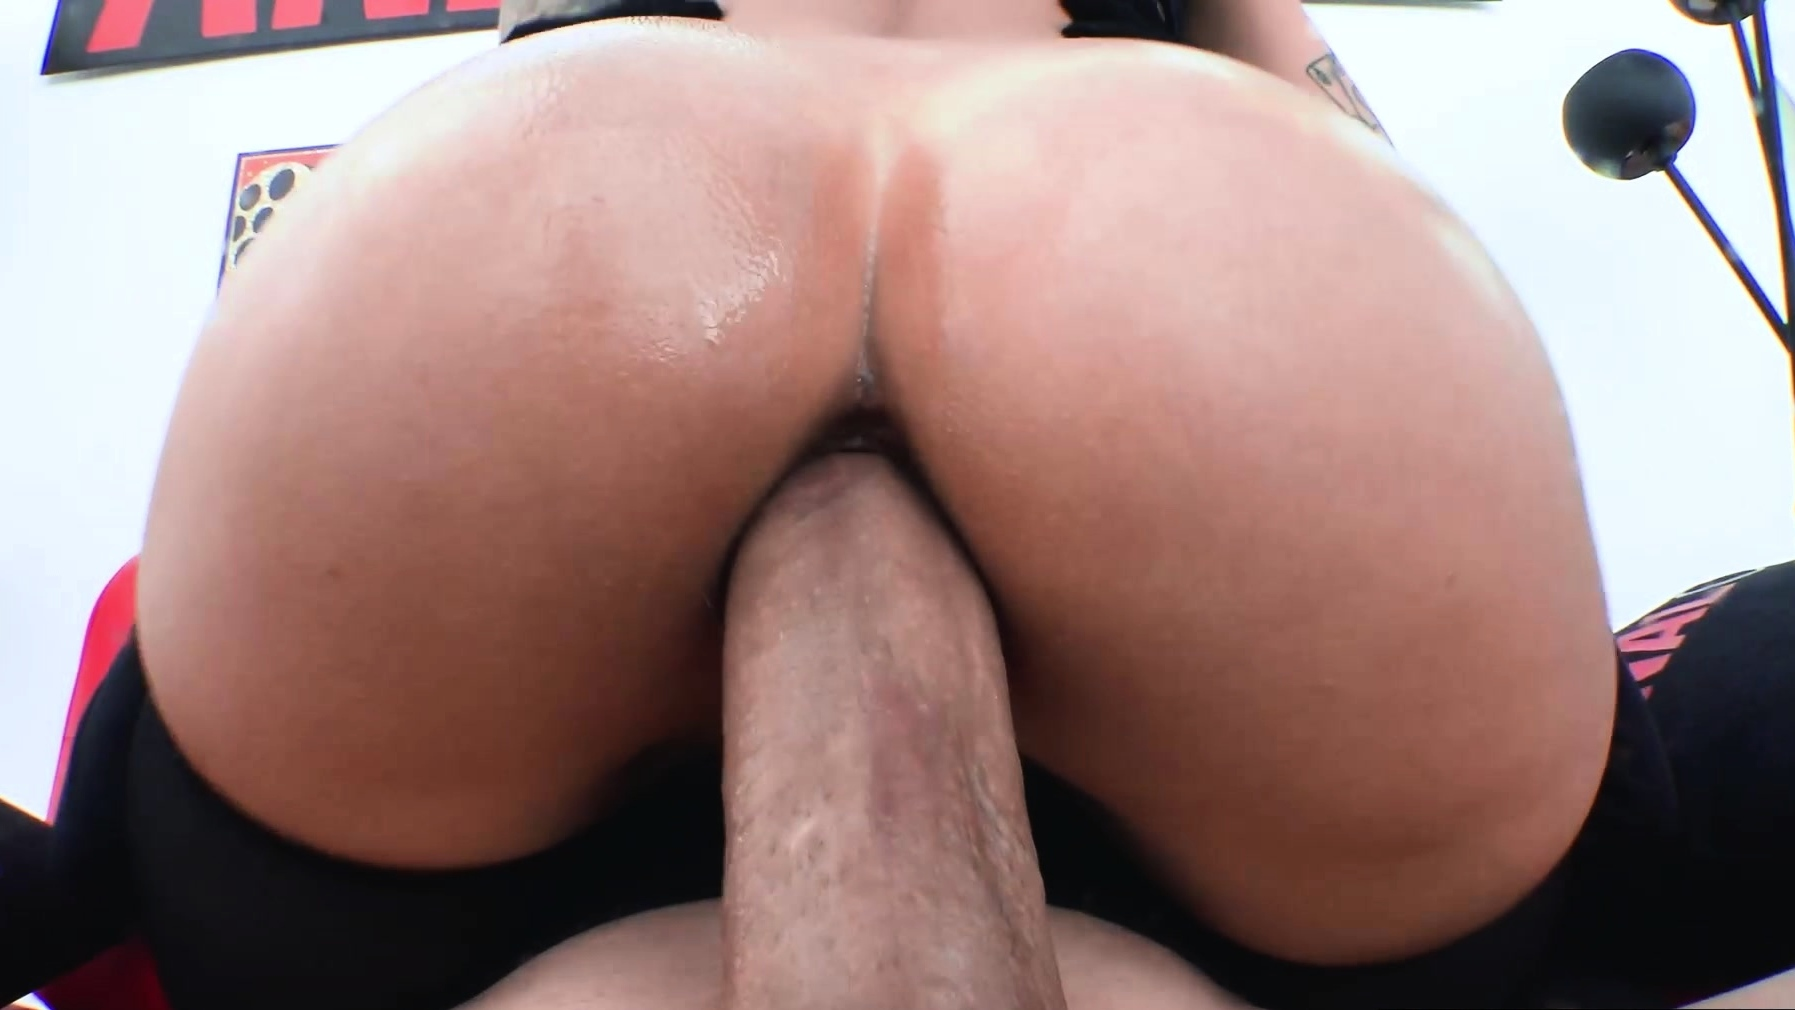 Anal Only Buttfucking Fun With Busty April Olsen